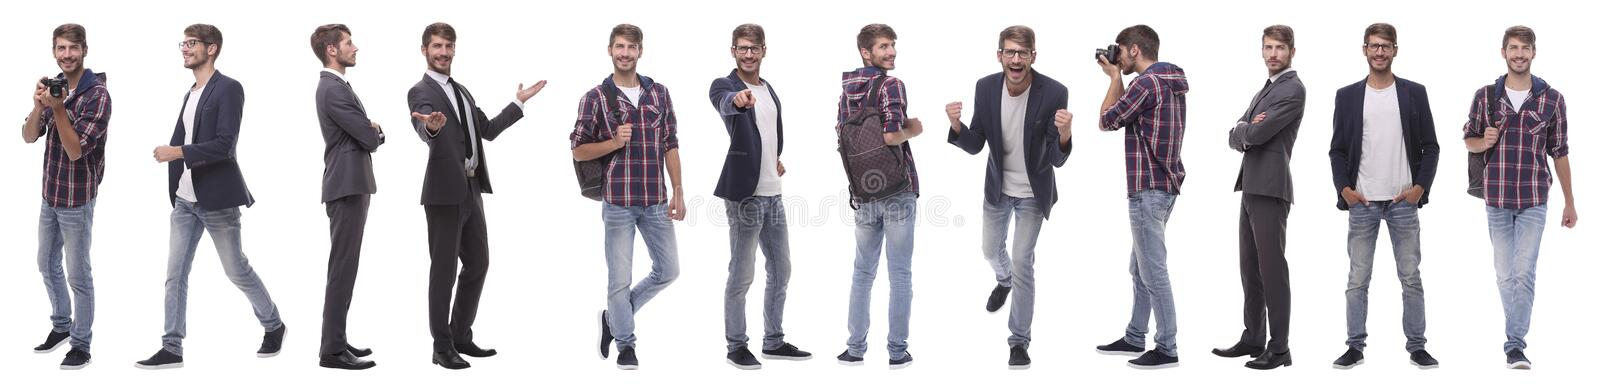 Panoramic collage of a promising young man stock photo